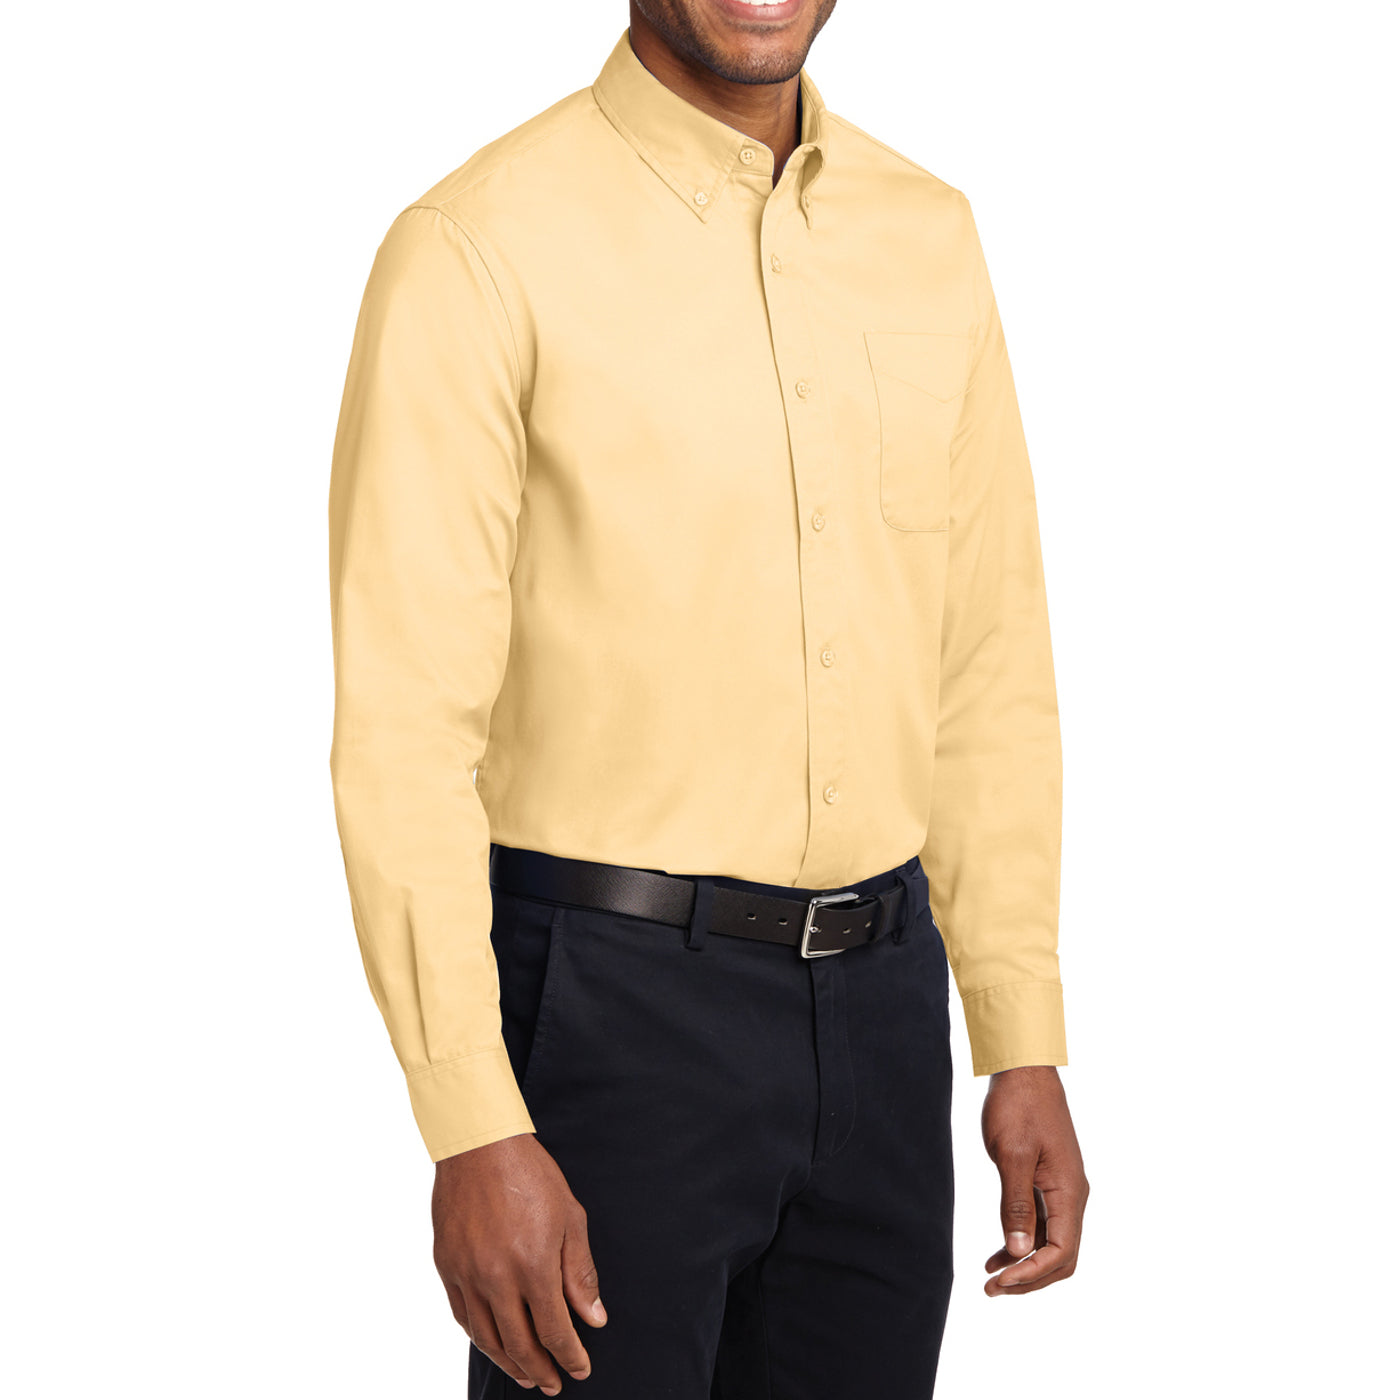 Men's Long Sleeve Easy Care Shirt - Yellow - Side